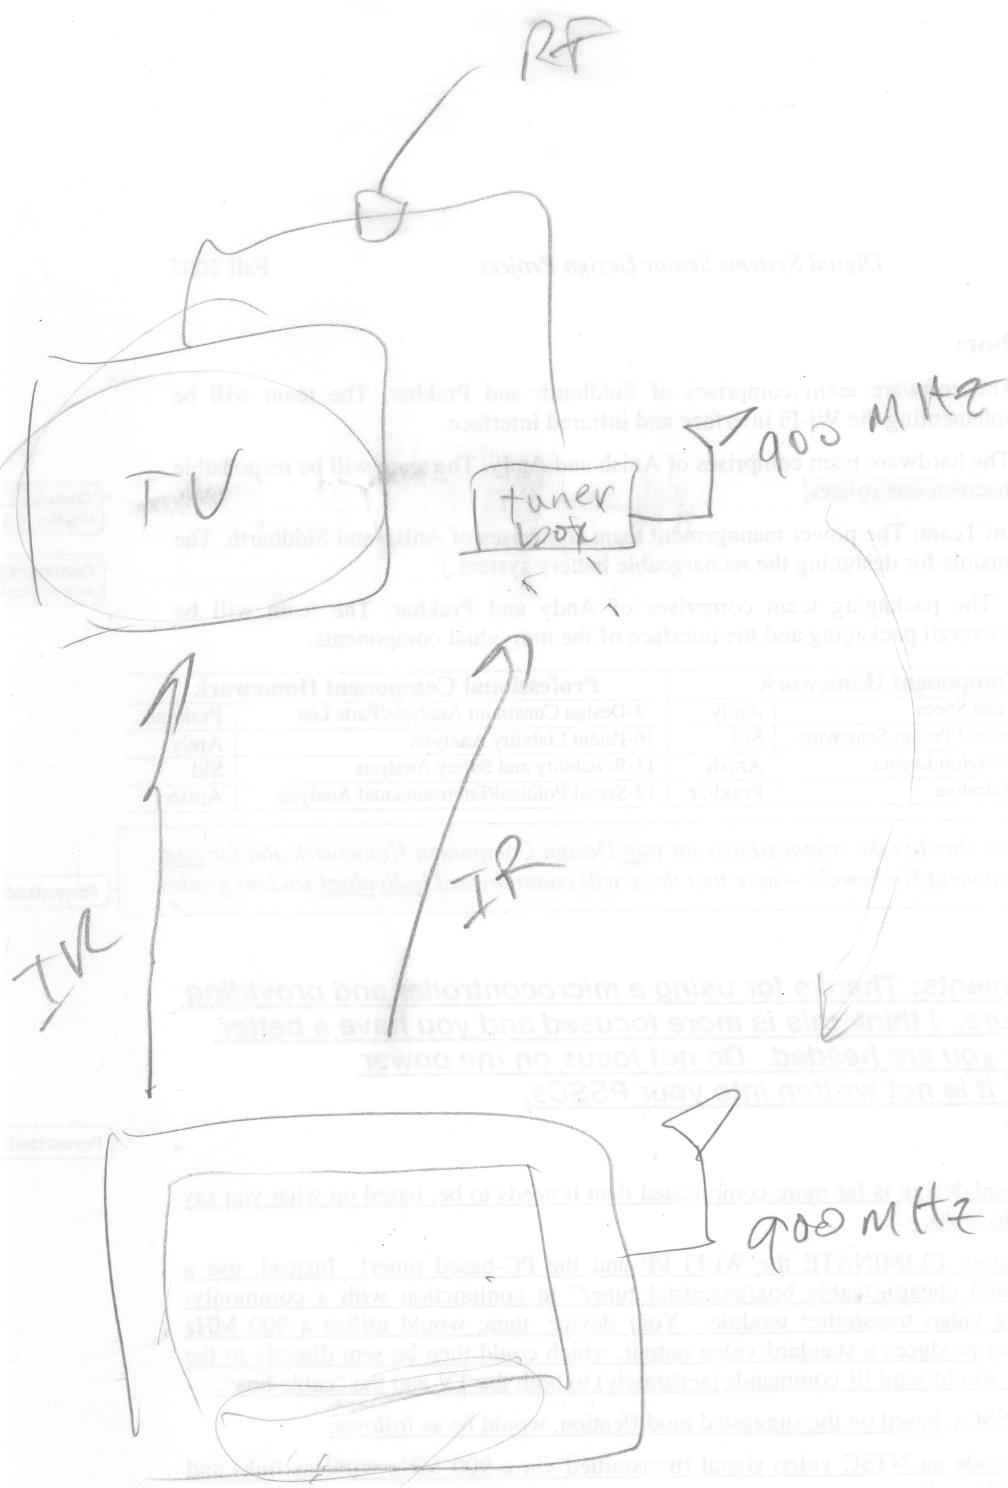 Siddharth Guptas Lab Notebook Block Diagram Of Transmitter Met With The Rest Team To Talk About Design Constraint Analysis And Looked Into Possible Rf Receiver Model Could Be Used Also